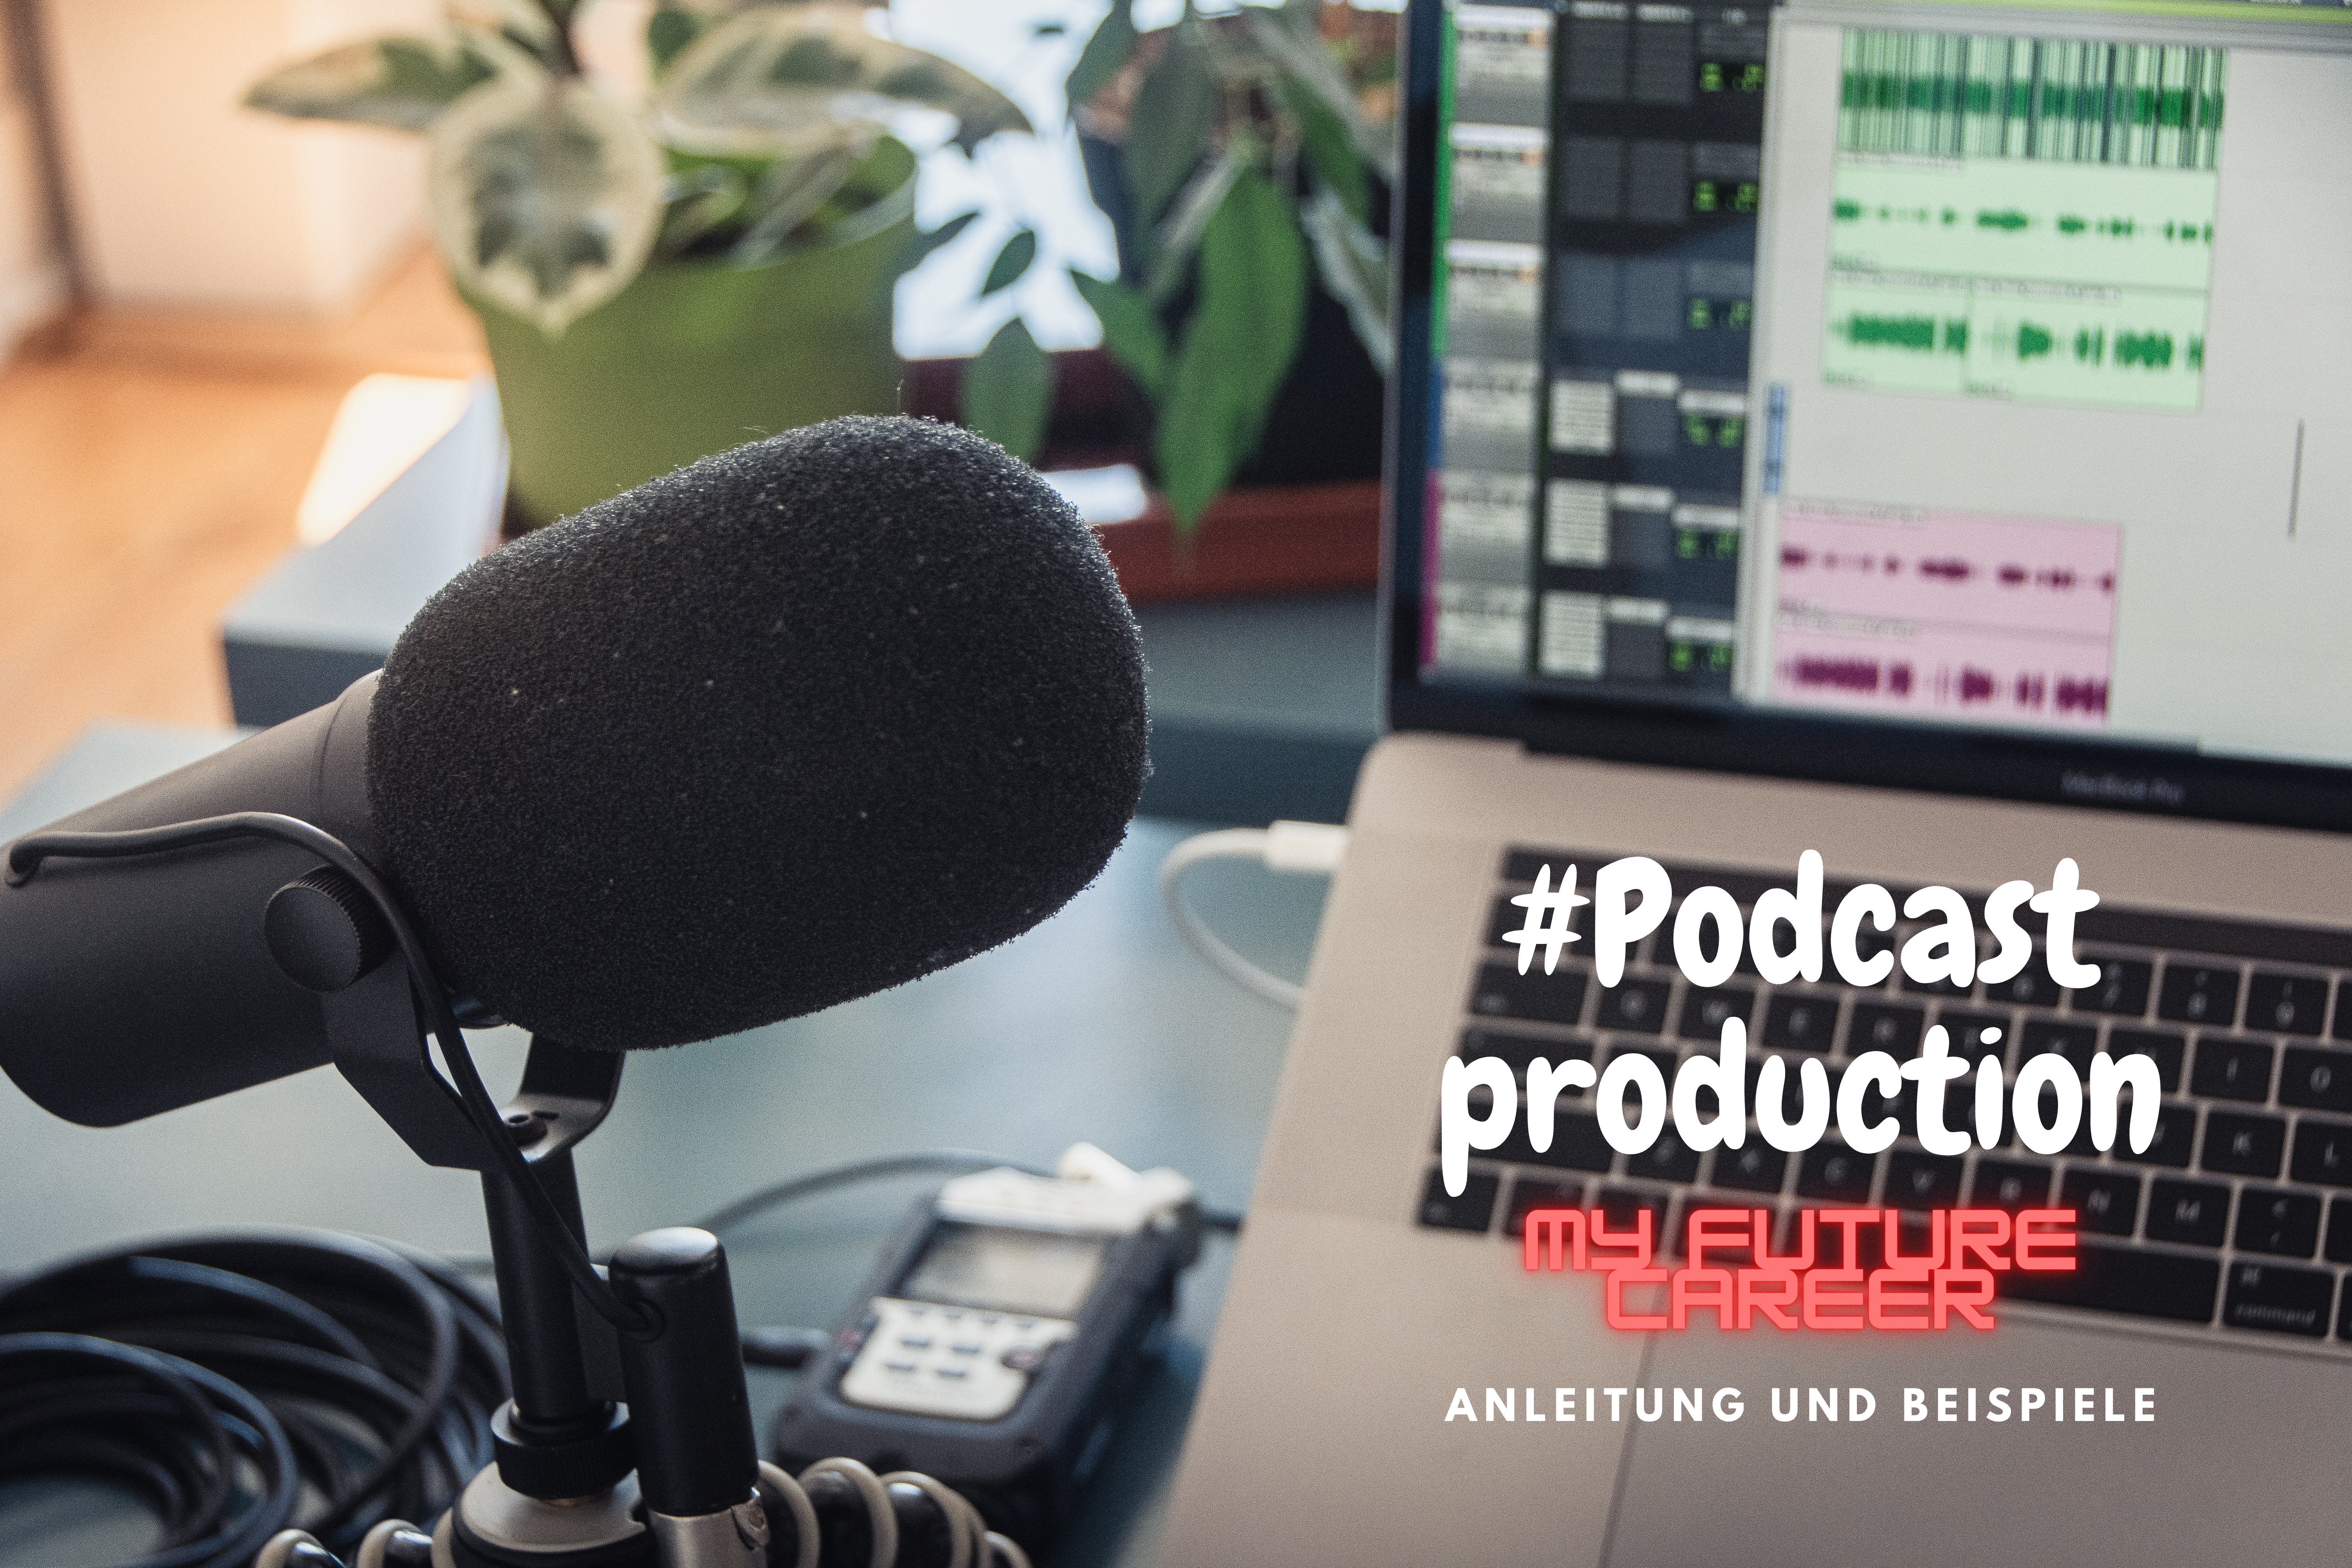 You are currently viewing My future career – podcast production